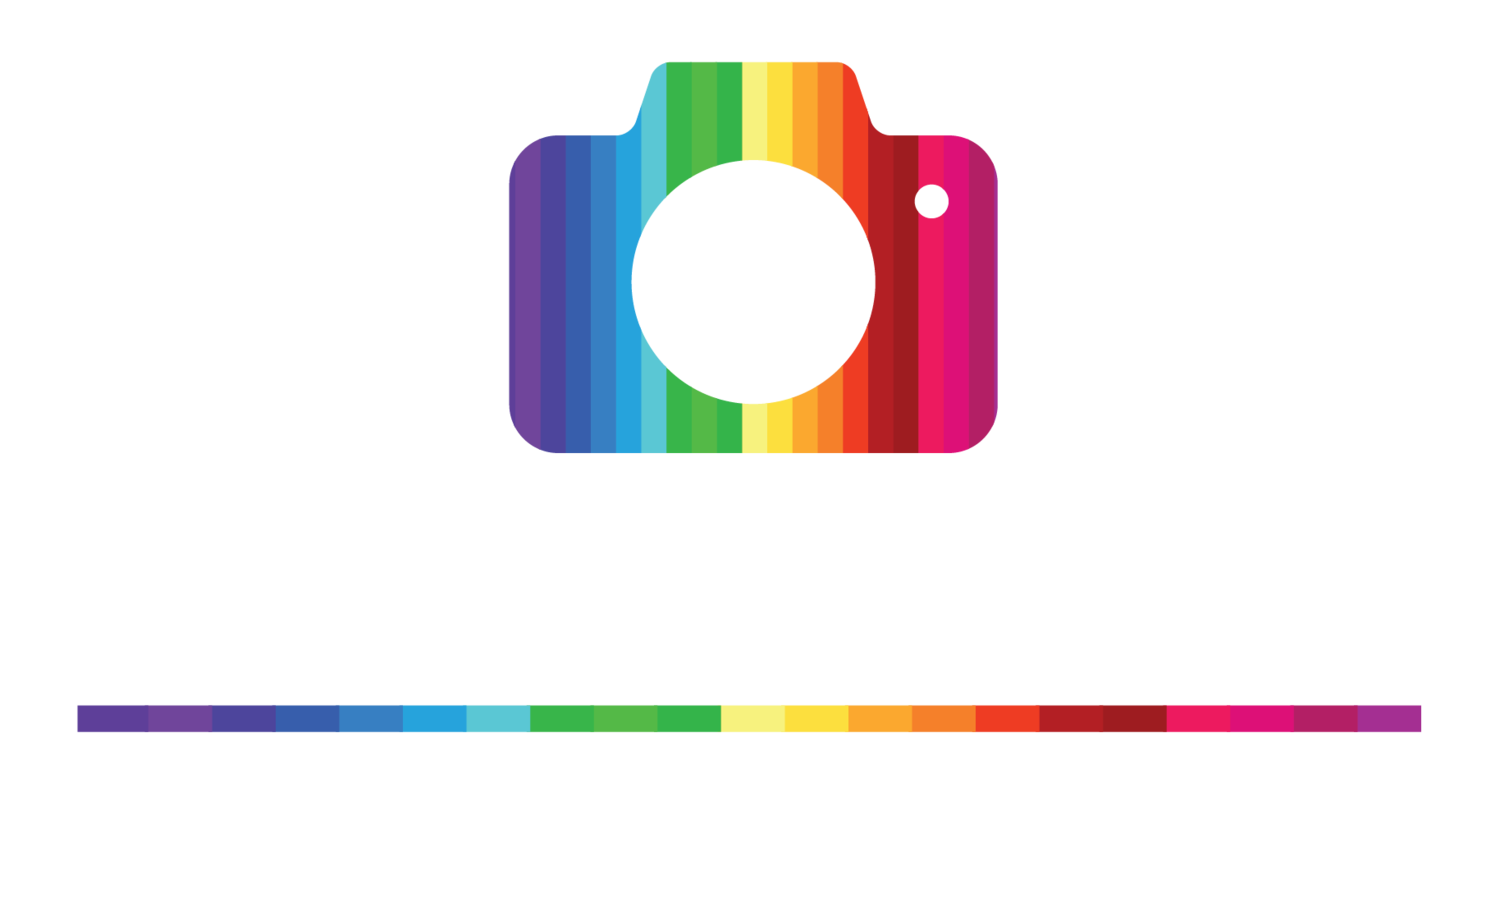 LB Photography